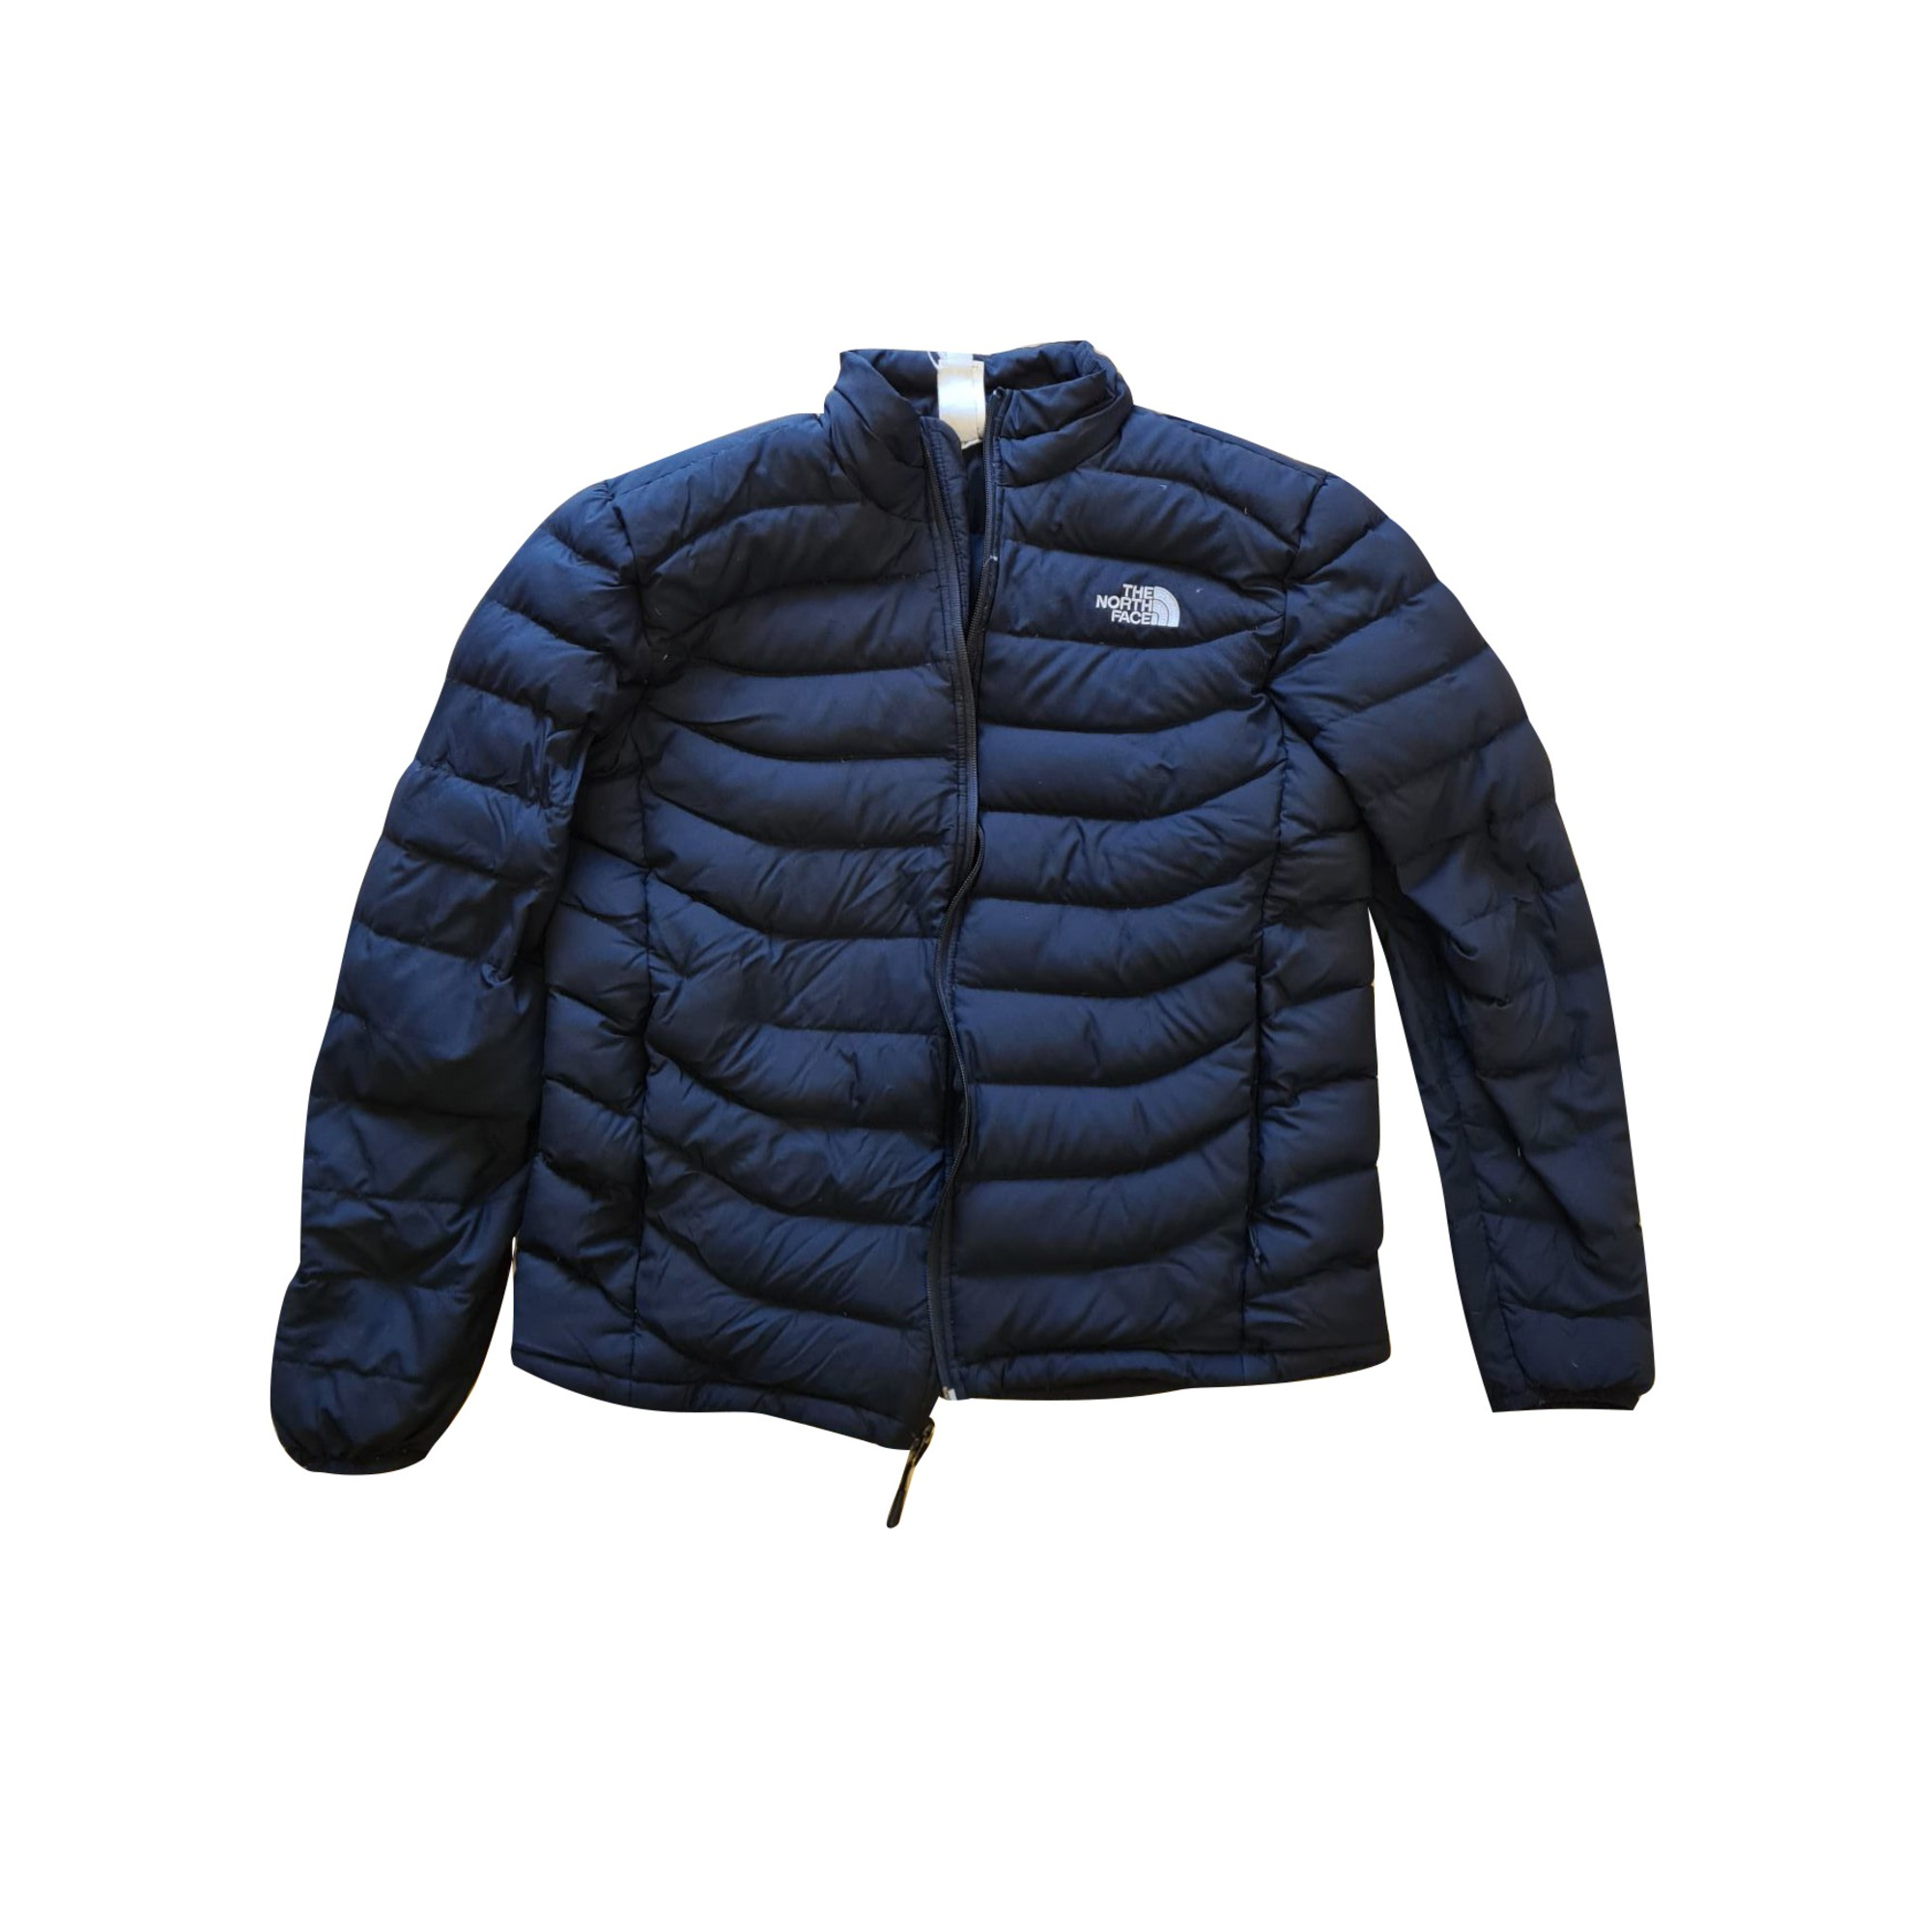 Down Jacket THE NORTH FACE Black